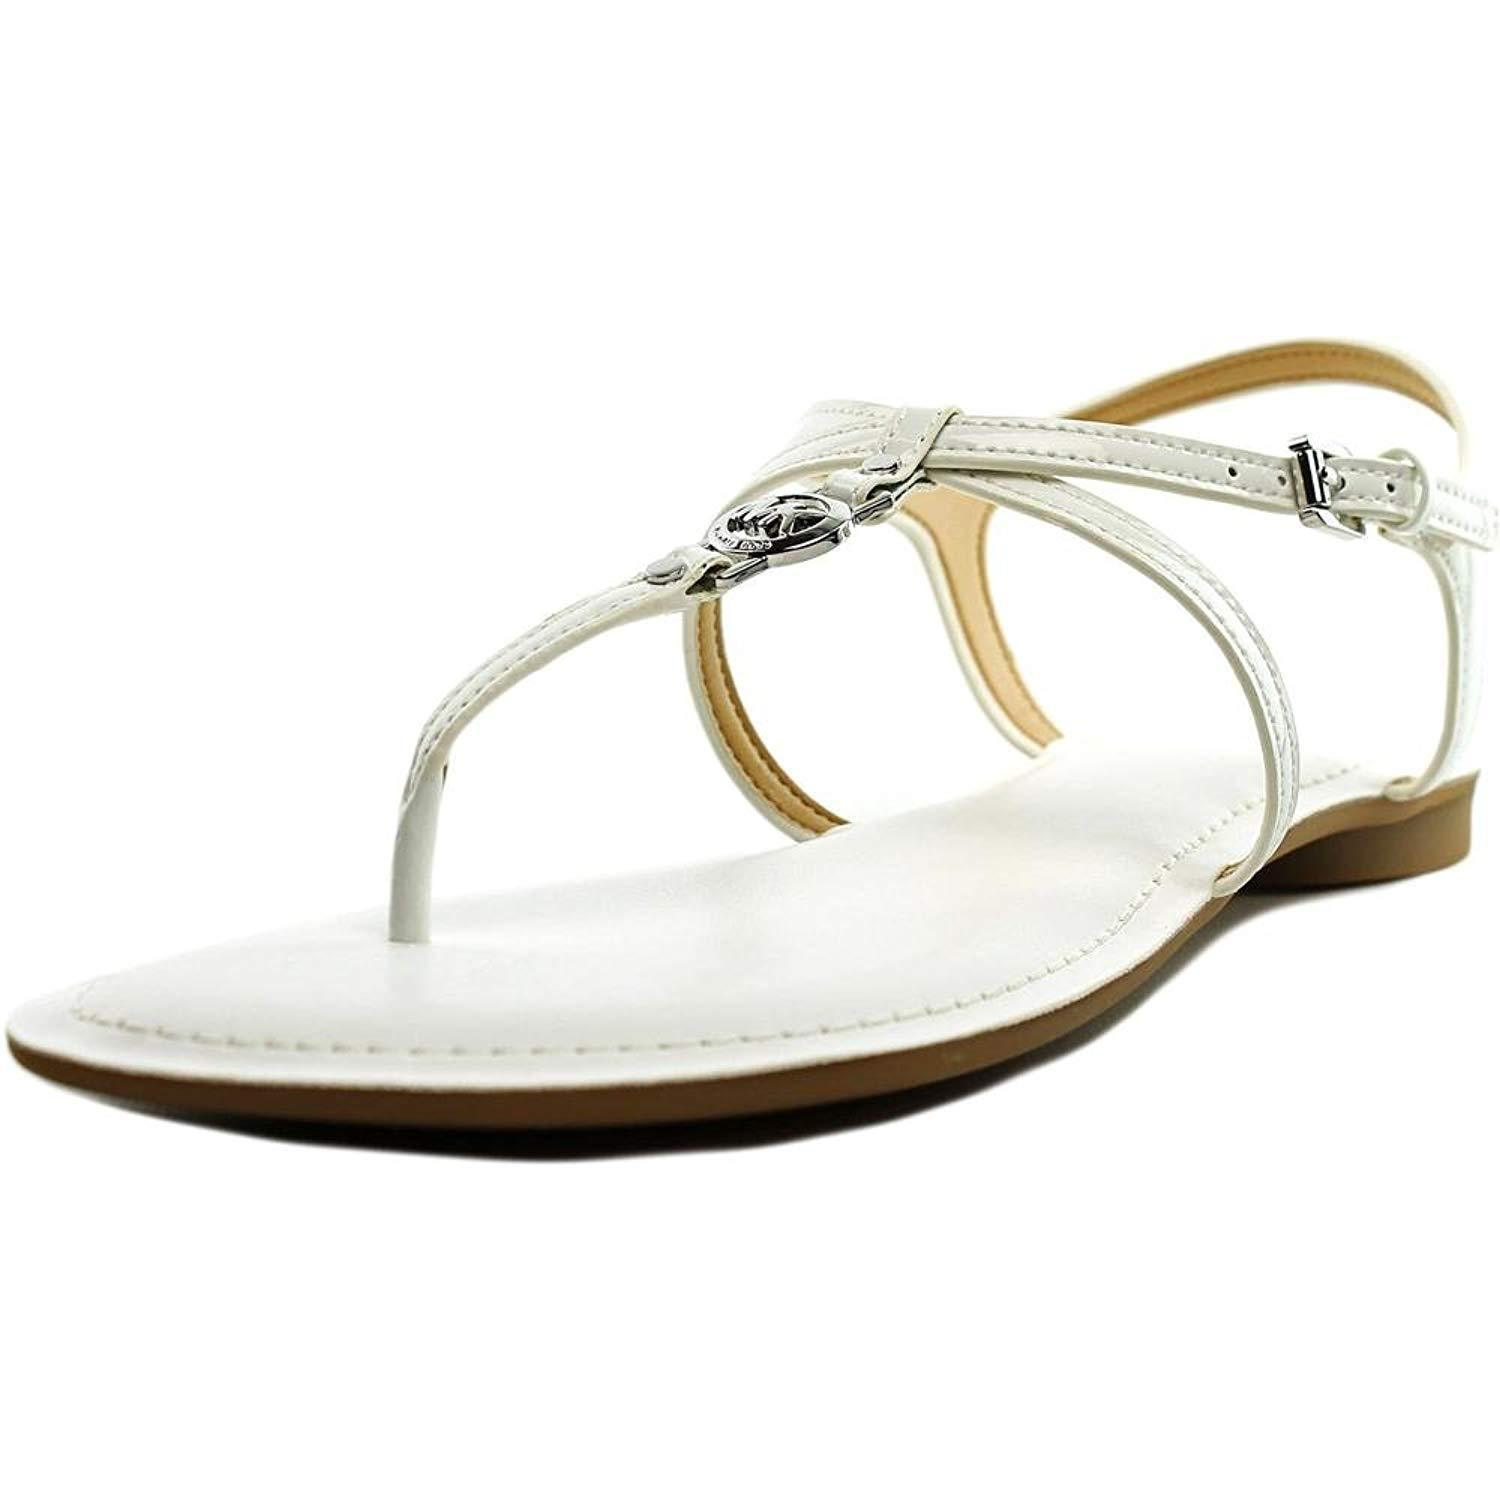 Michael Kors Women's Premium Designer Bethany Leather Sandals White